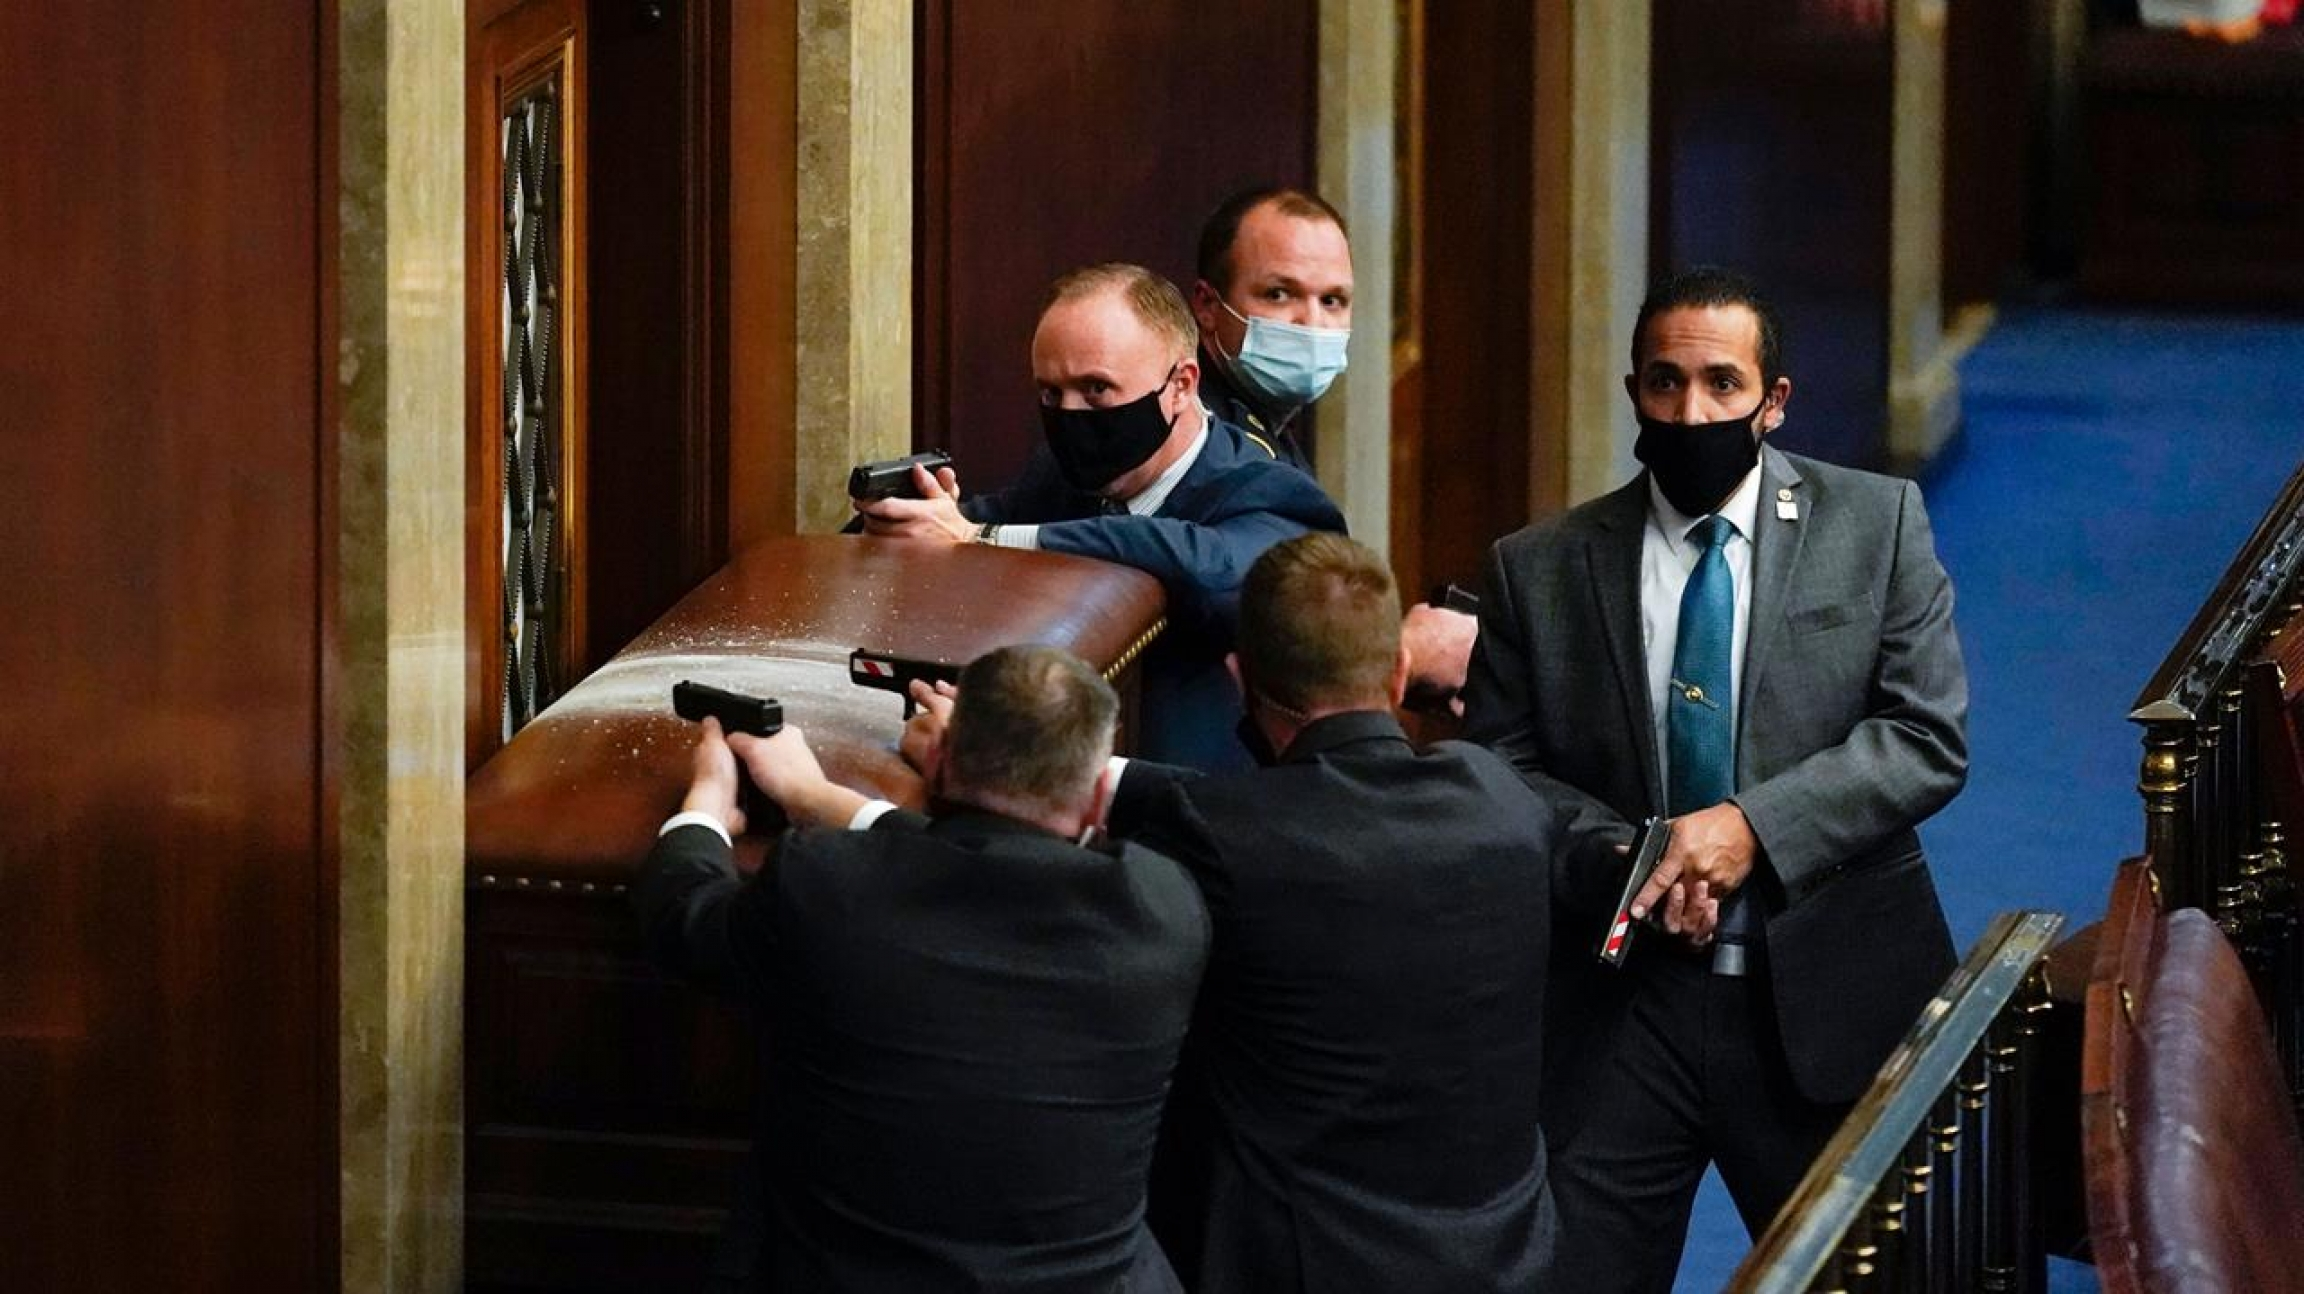 US Capitol police with guns drawn stand near a barricaded door as members of a mob try to break into the House Chamber in Washington.